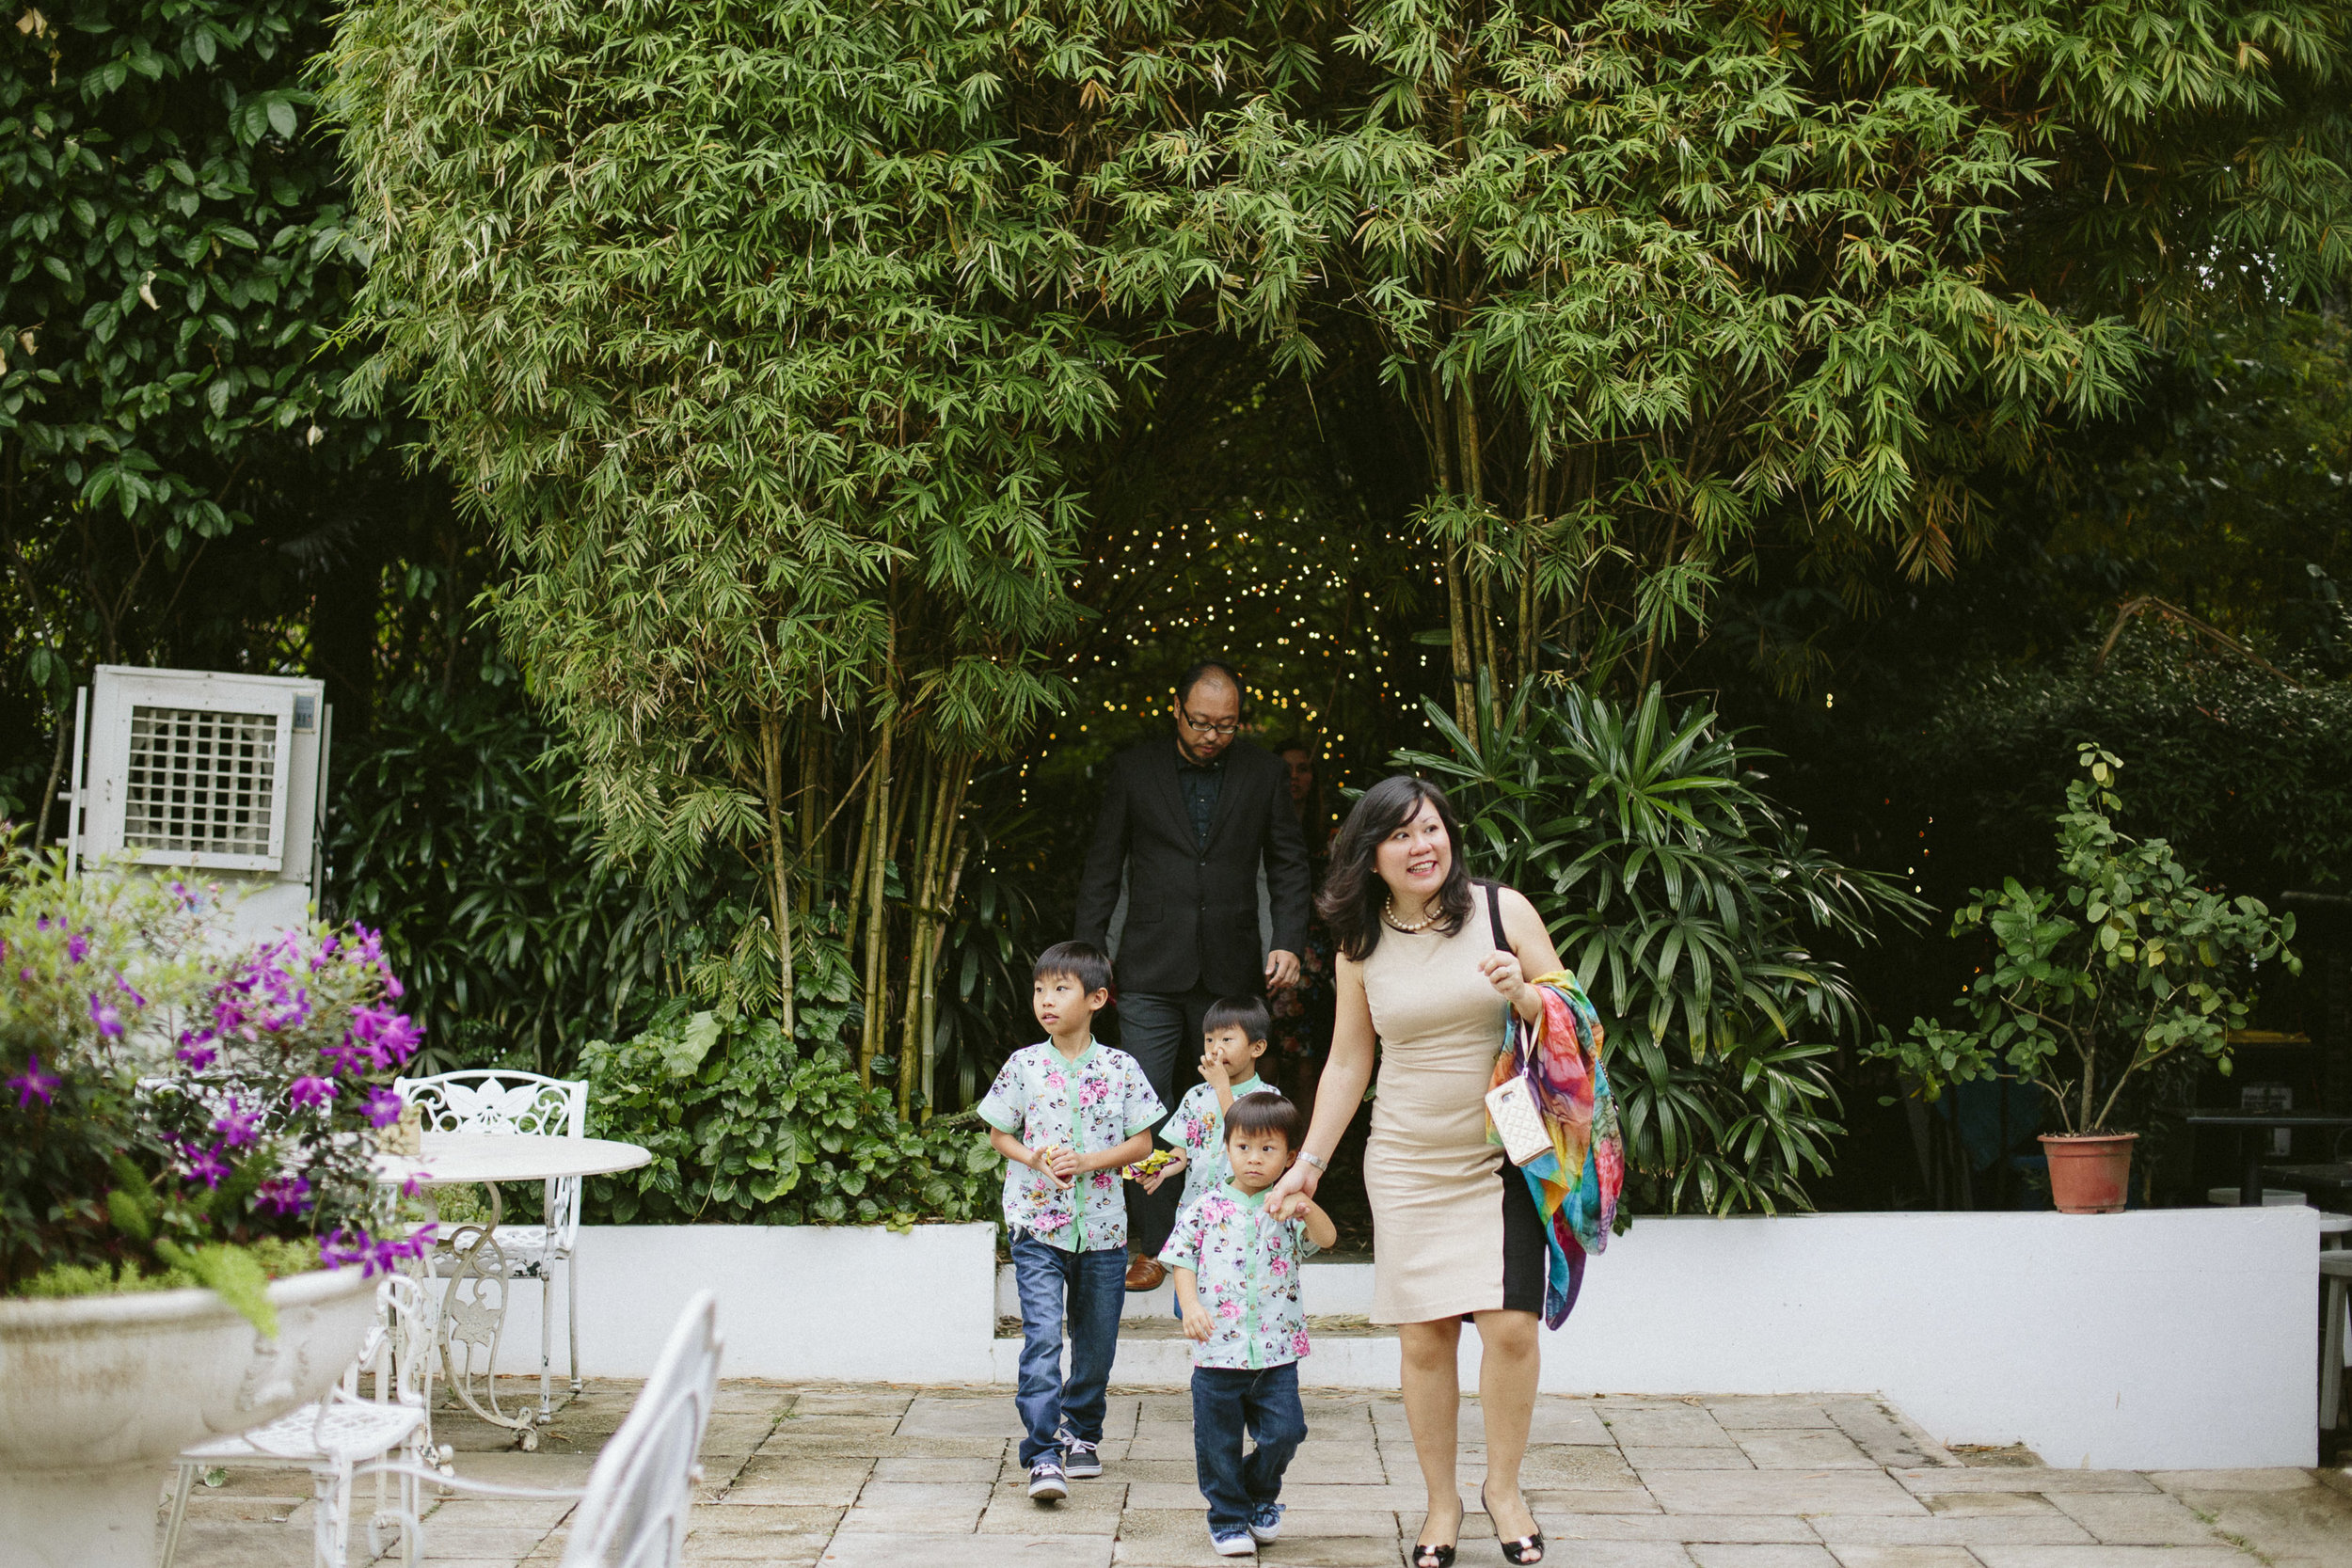 singapore-wedding-photographer-hiram-joyce-030.jpg